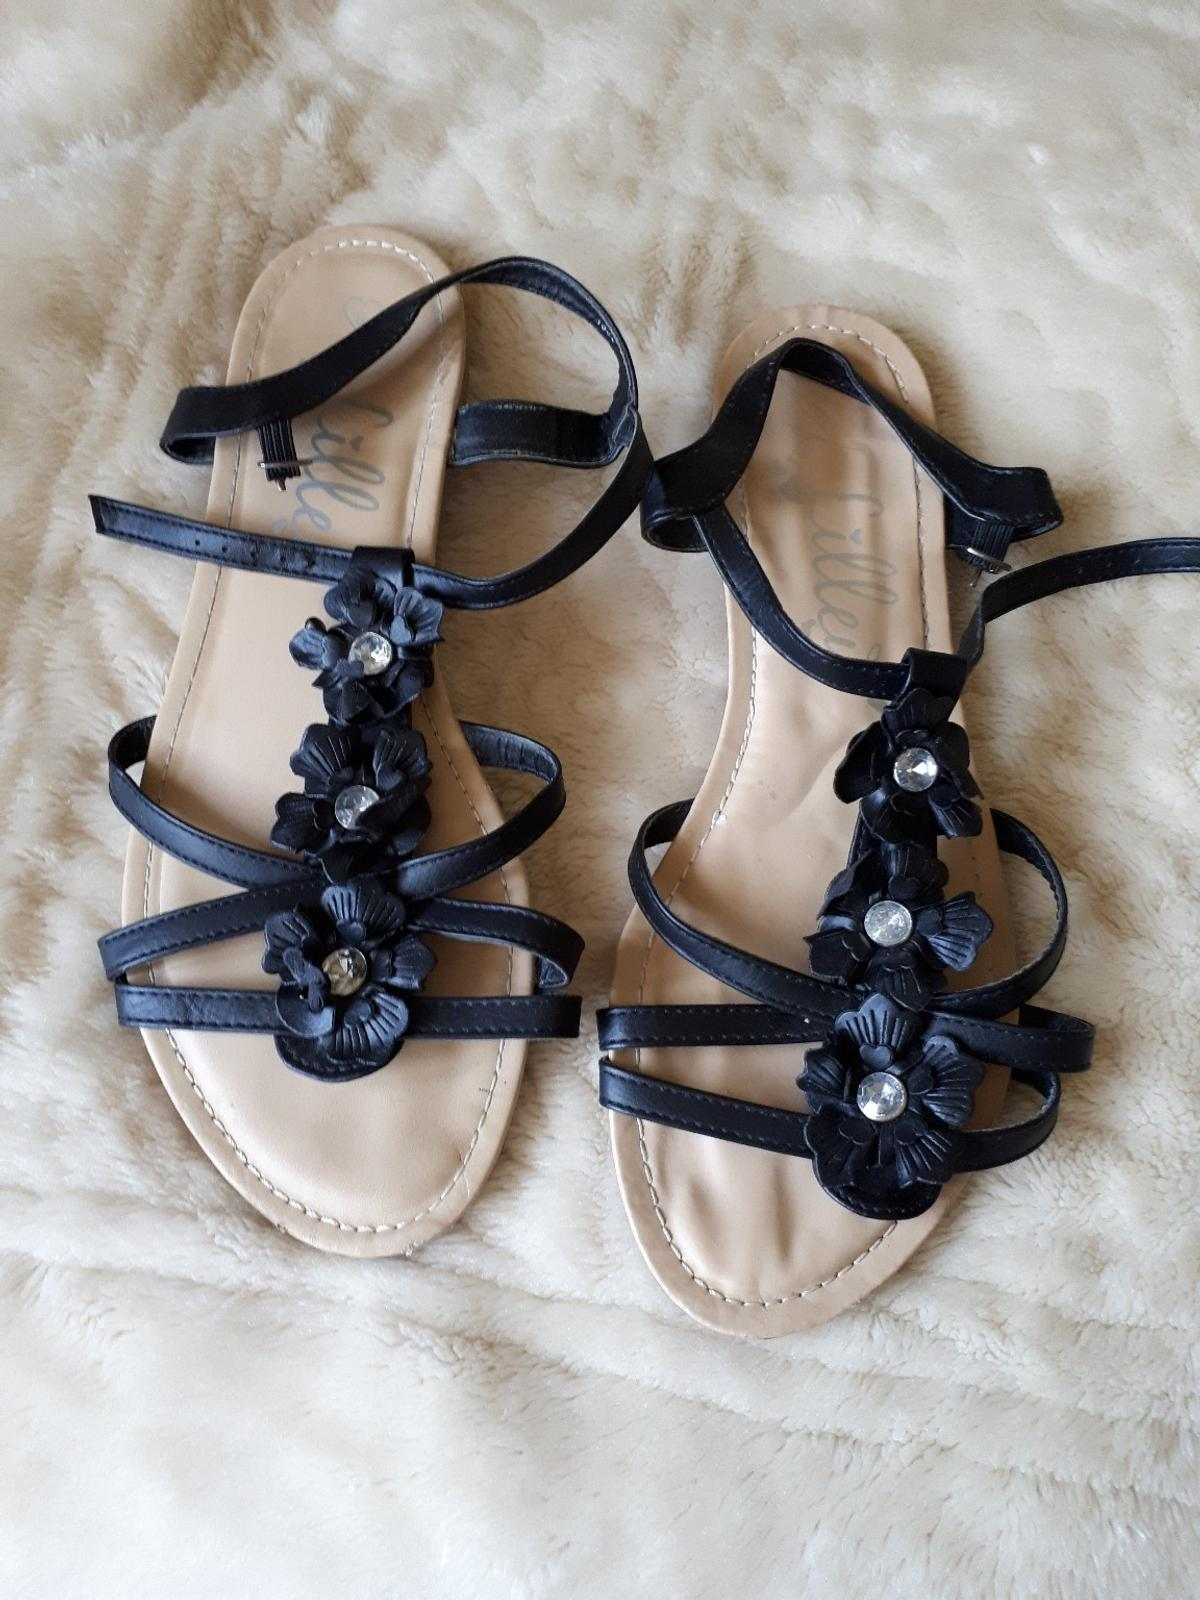 Very comfy black flat sandals with 3 flowers up the front and crystals. I thought they were big on me then I realised I had looked at the size upsides down and I wanted a 6